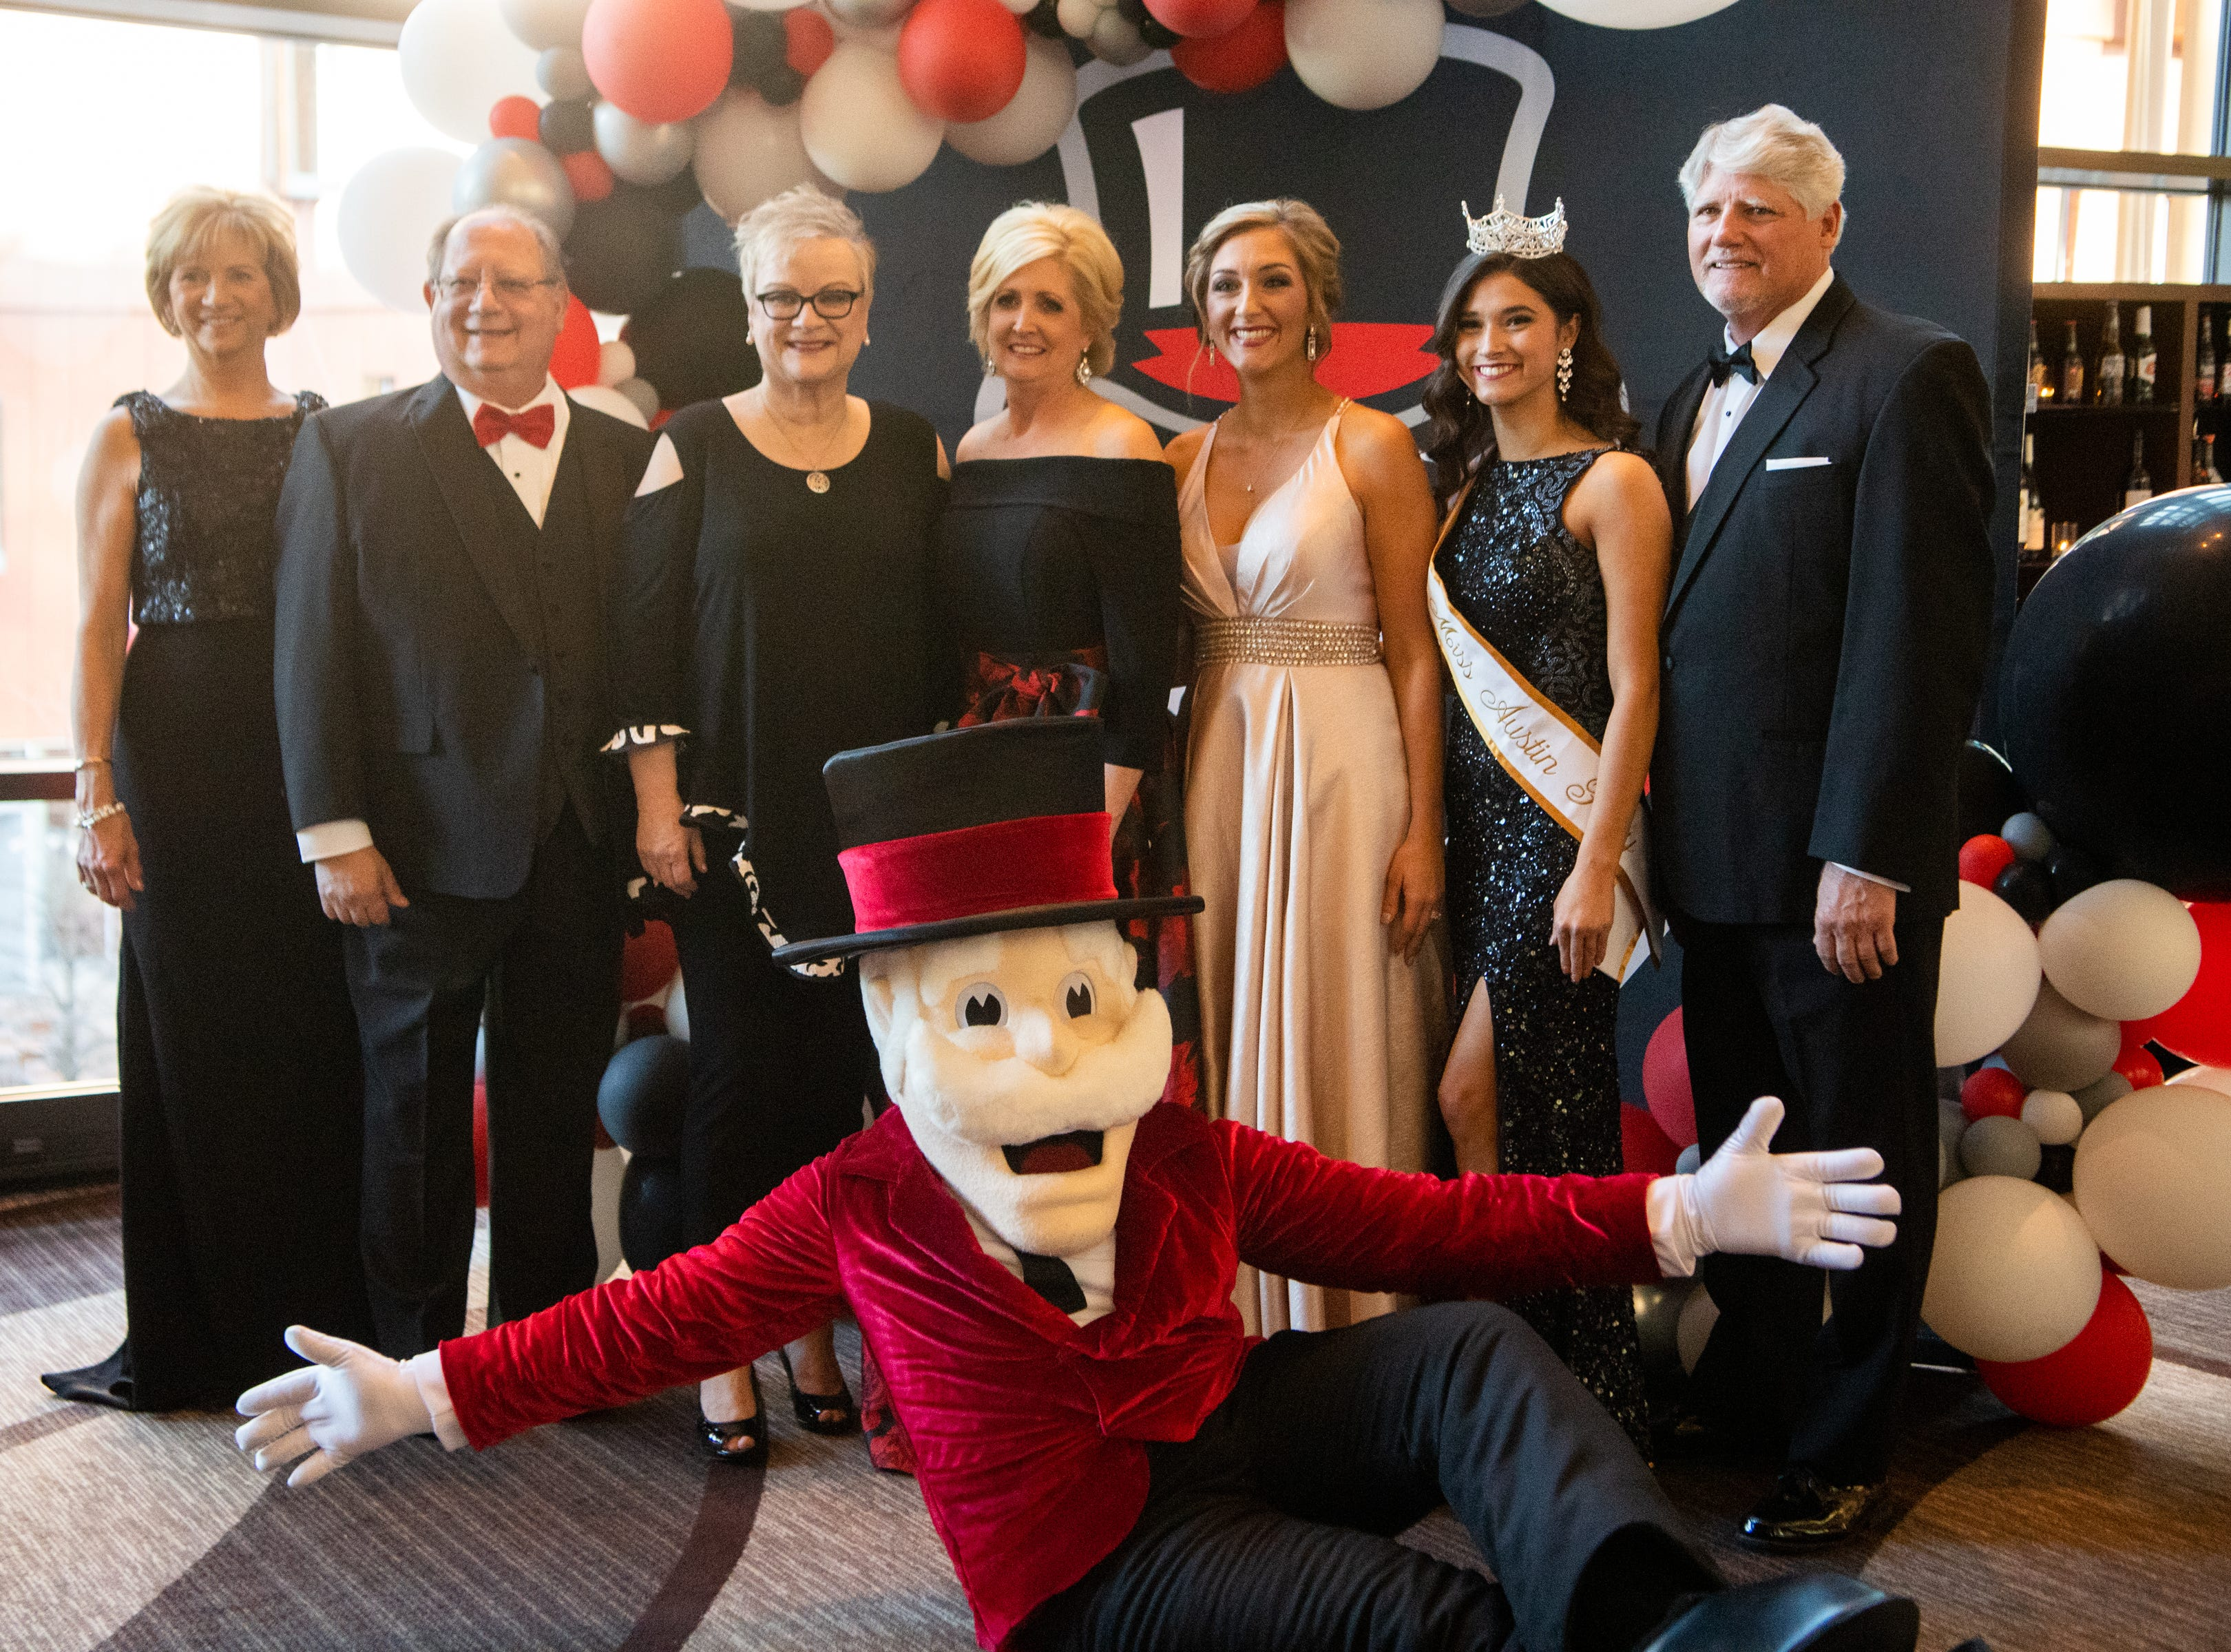 Dr. Jeannie Beauchamp, Elliott Herzlich, Dr. Alisa White, Andrea Herrera, Kathryn Minniehan, Allie Privitt and Len Rye (from left) pose for a photo during Austin Peay State University's annual Candlelight Ball at the Omni Nashville Hotel Saturday, March 16, 2019, in Nashville, Tenn.